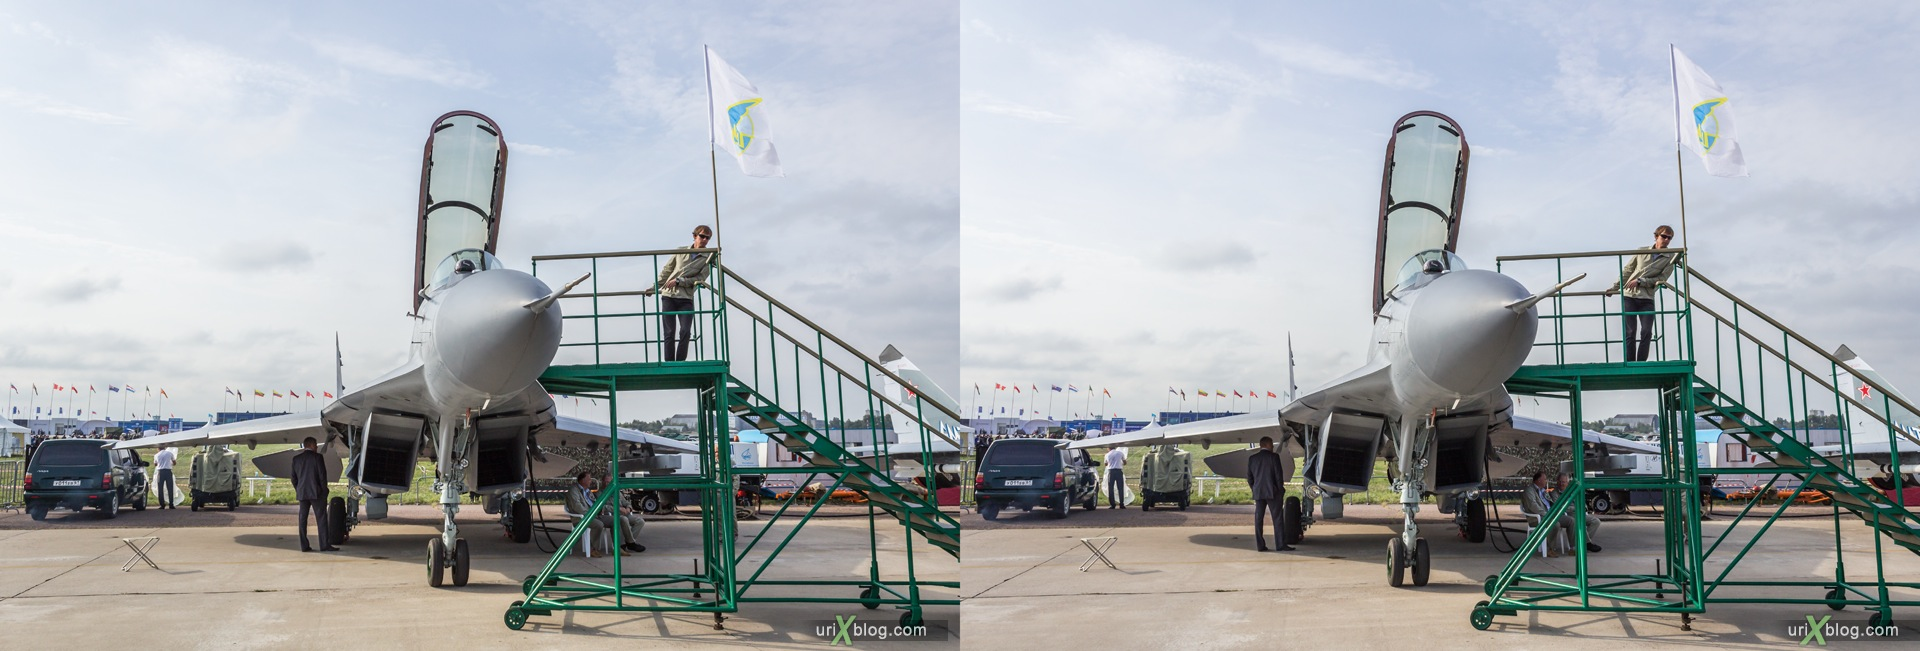 2013, MiG-35, MAKS, International Aviation and Space Salon, Russia, Soviet, USSR, Ramenskoye airfield, airplane, 3D, stereo pair, cross-eyed, crossview, cross view stereo pair, stereoscopic